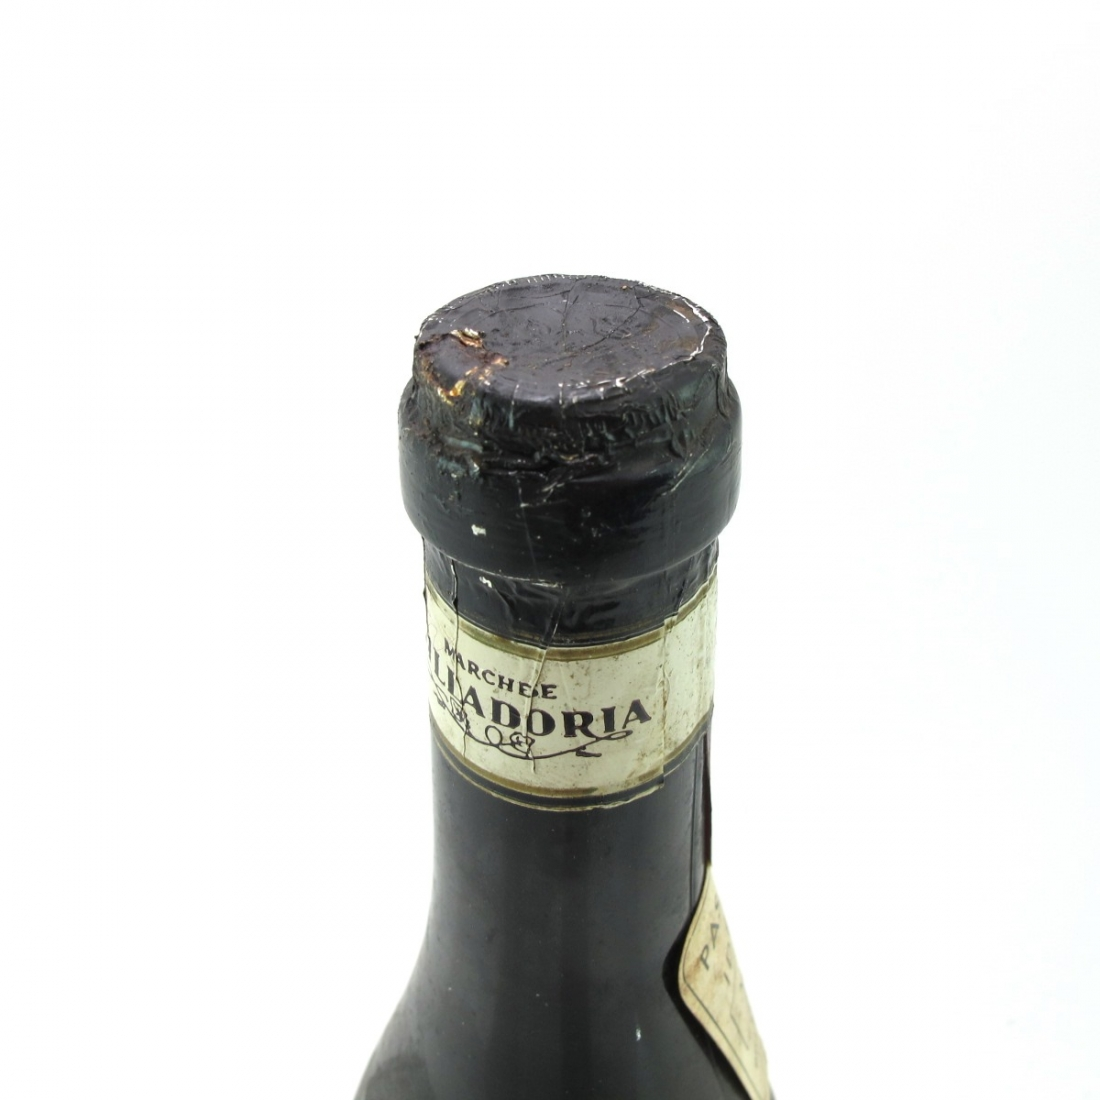 Villadoria 1956 Barbaresco